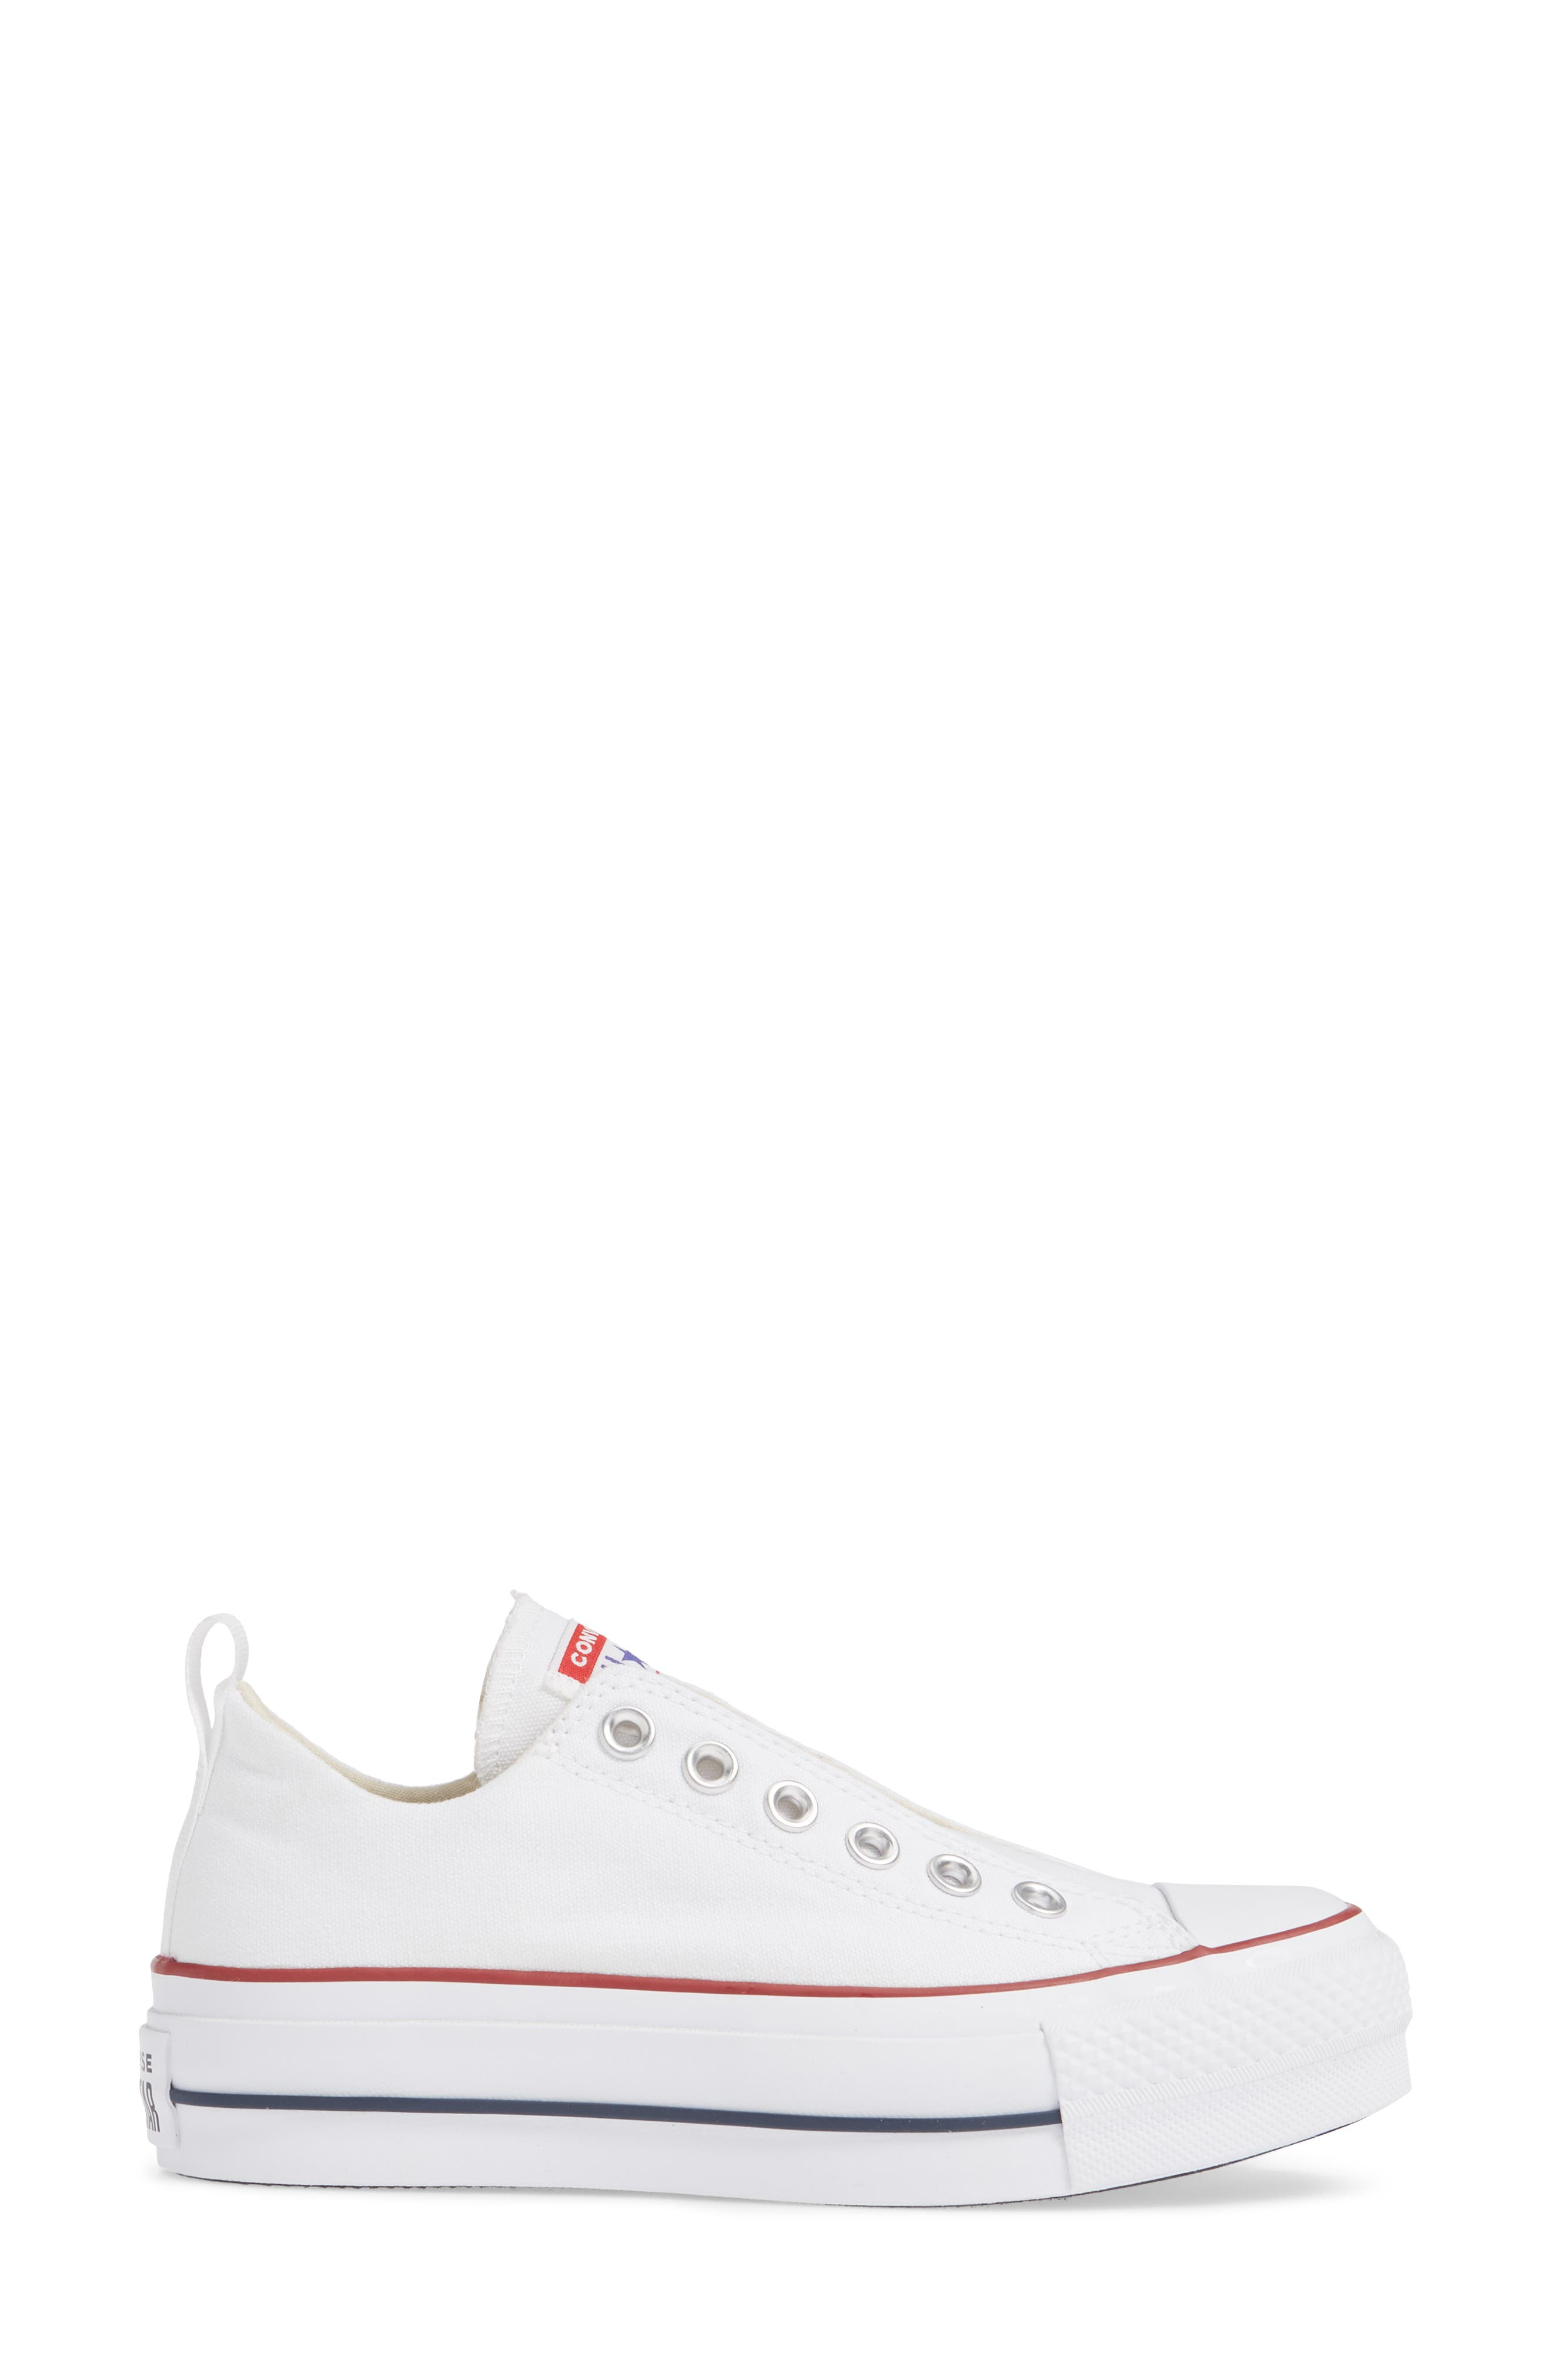 CONVERSE, Chuck Taylor<sup>®</sup> All Star<sup>®</sup> Low Top Sneaker, Alternate thumbnail 3, color, WHITE/ RED/ BLUE